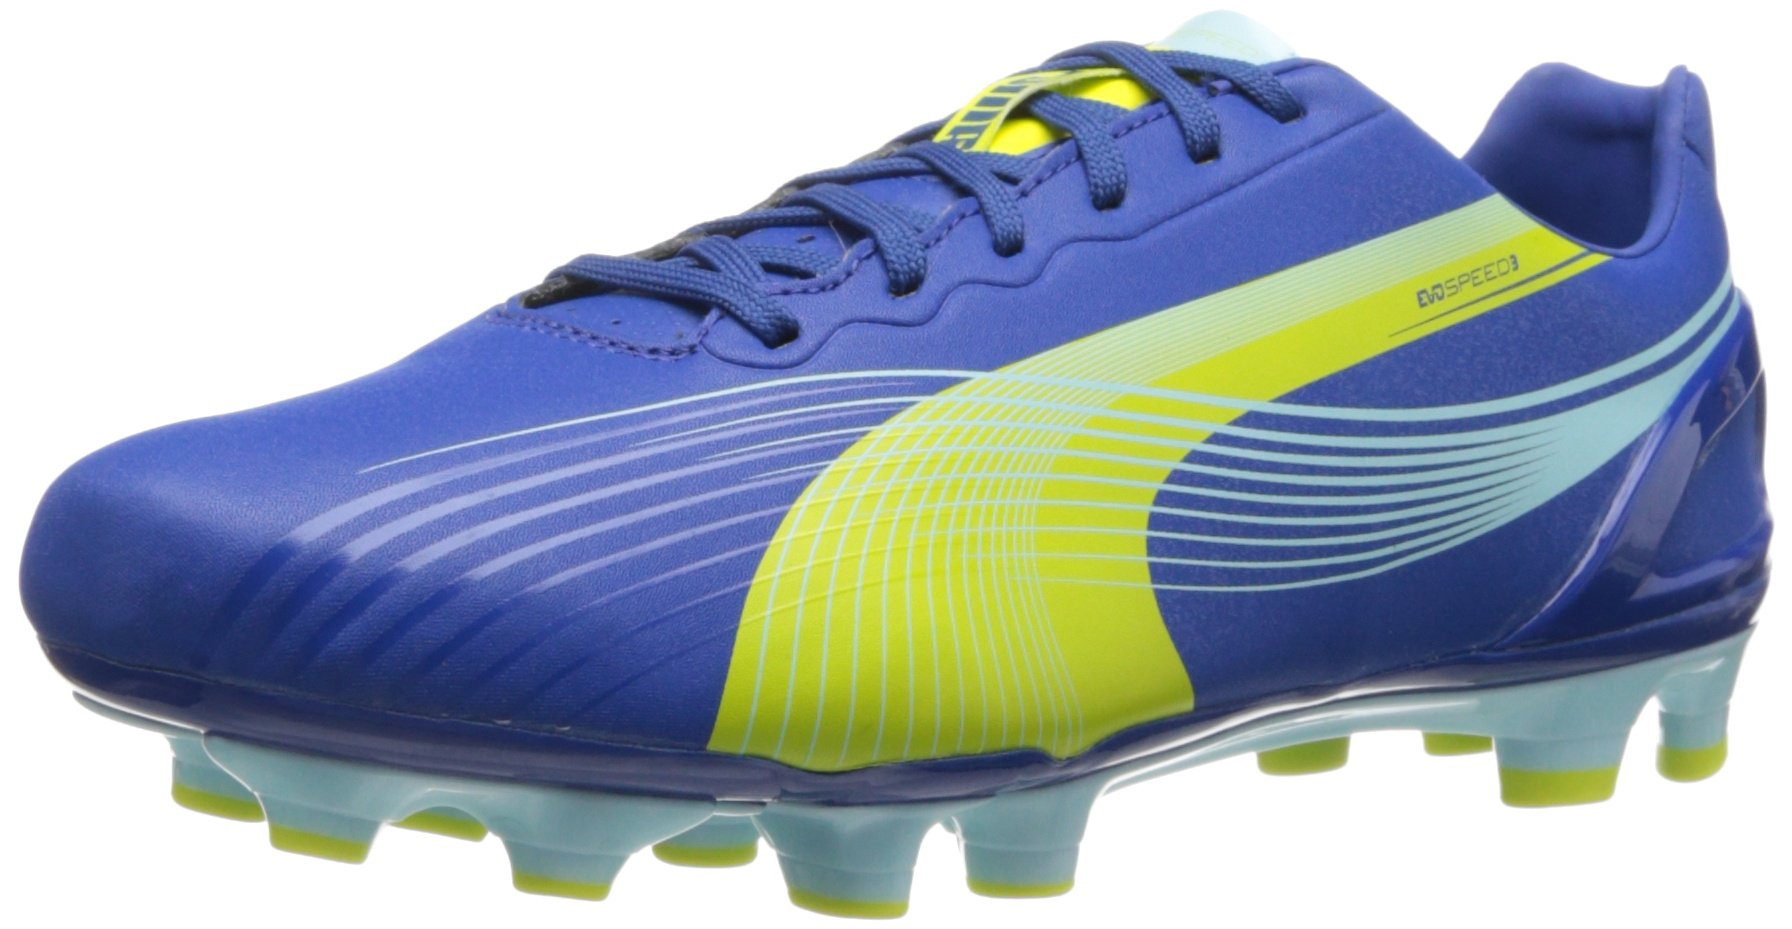 PUMA Women's Evospeed 3.2 FG Soccer Shoe,Monaco Blue/Sulfur Spring/Sunny Lime,8.5 B US by PUMA